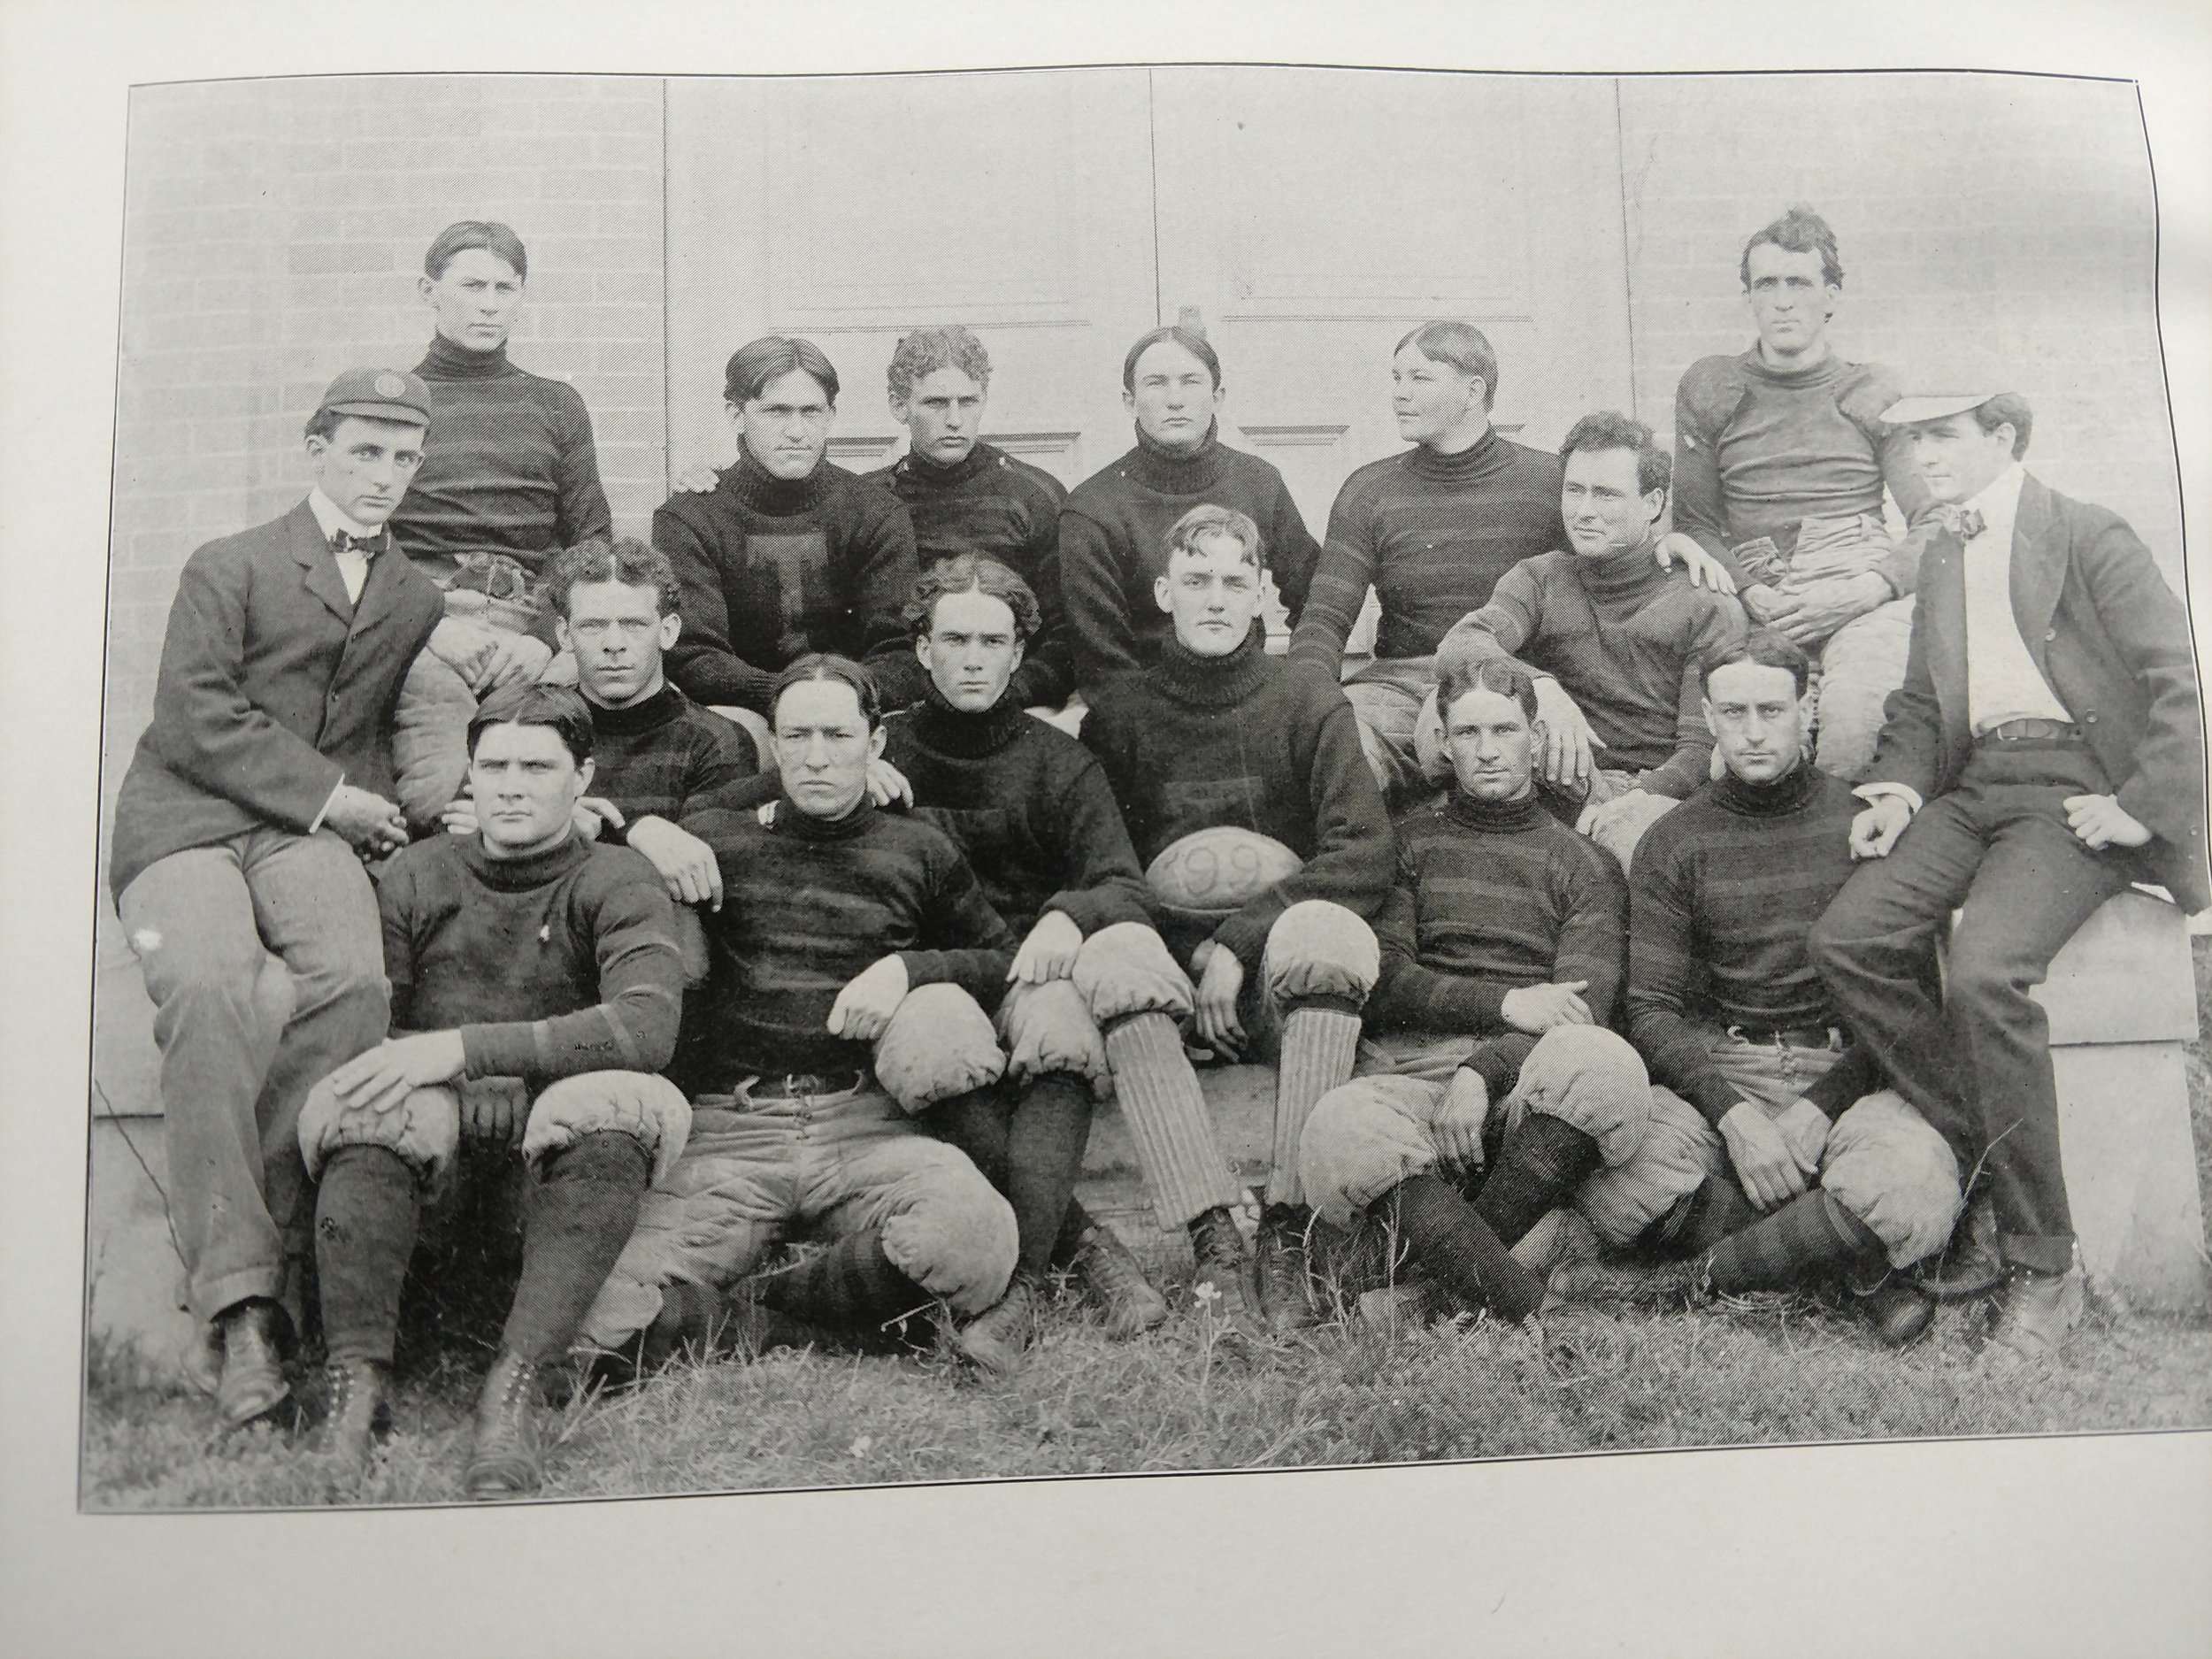 1899 Stewart's grandfather played on the 1899 team